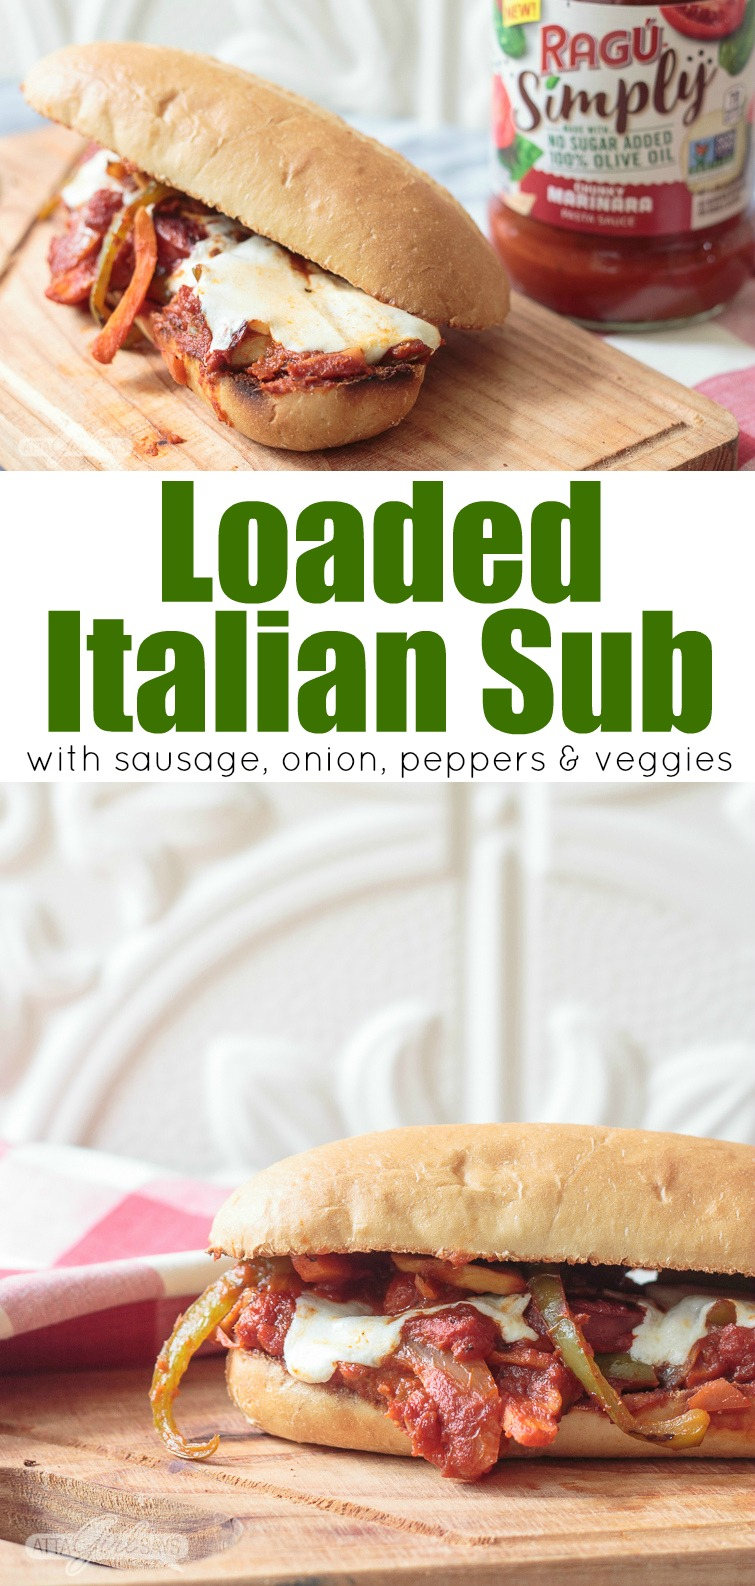 Collage photo labeled Loaded Italian sub. The top photo shows a hot italian sausage and peppers sandwich on a wooden cutting board atop a red-and-white checked tablecloth with a jar of RAGU pasta sauce in the background. The bottom photo shows a hot Italian sausage and peppers sub sandwich, loaded with vegetables and marinara sauce, sitting on a wooden cutting board